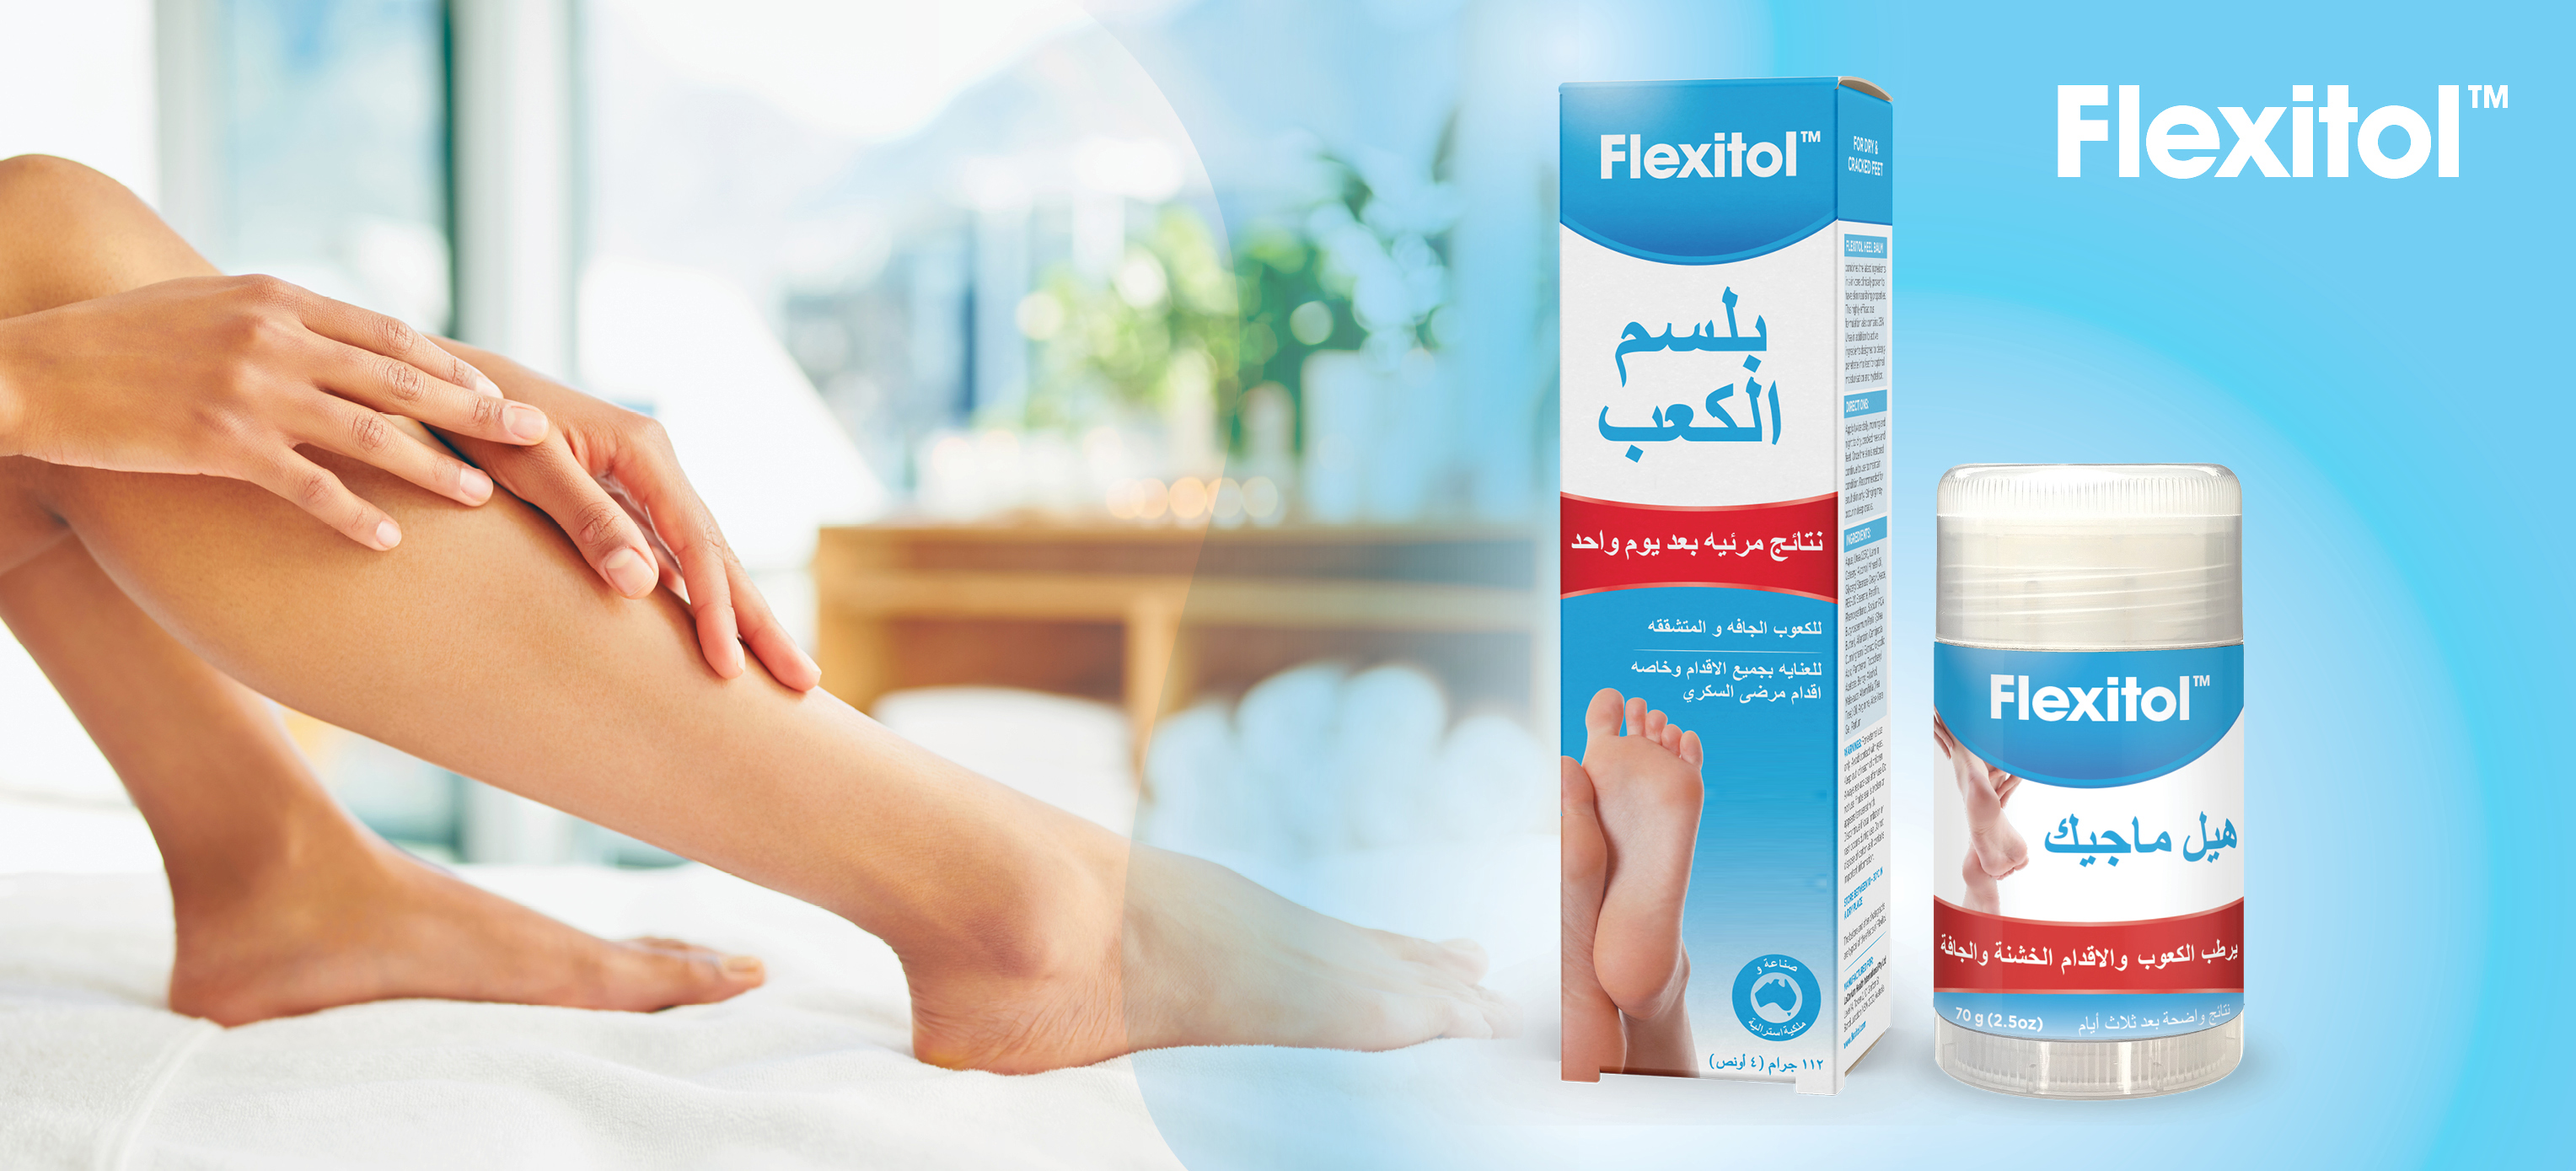 Flexitol Foot Care